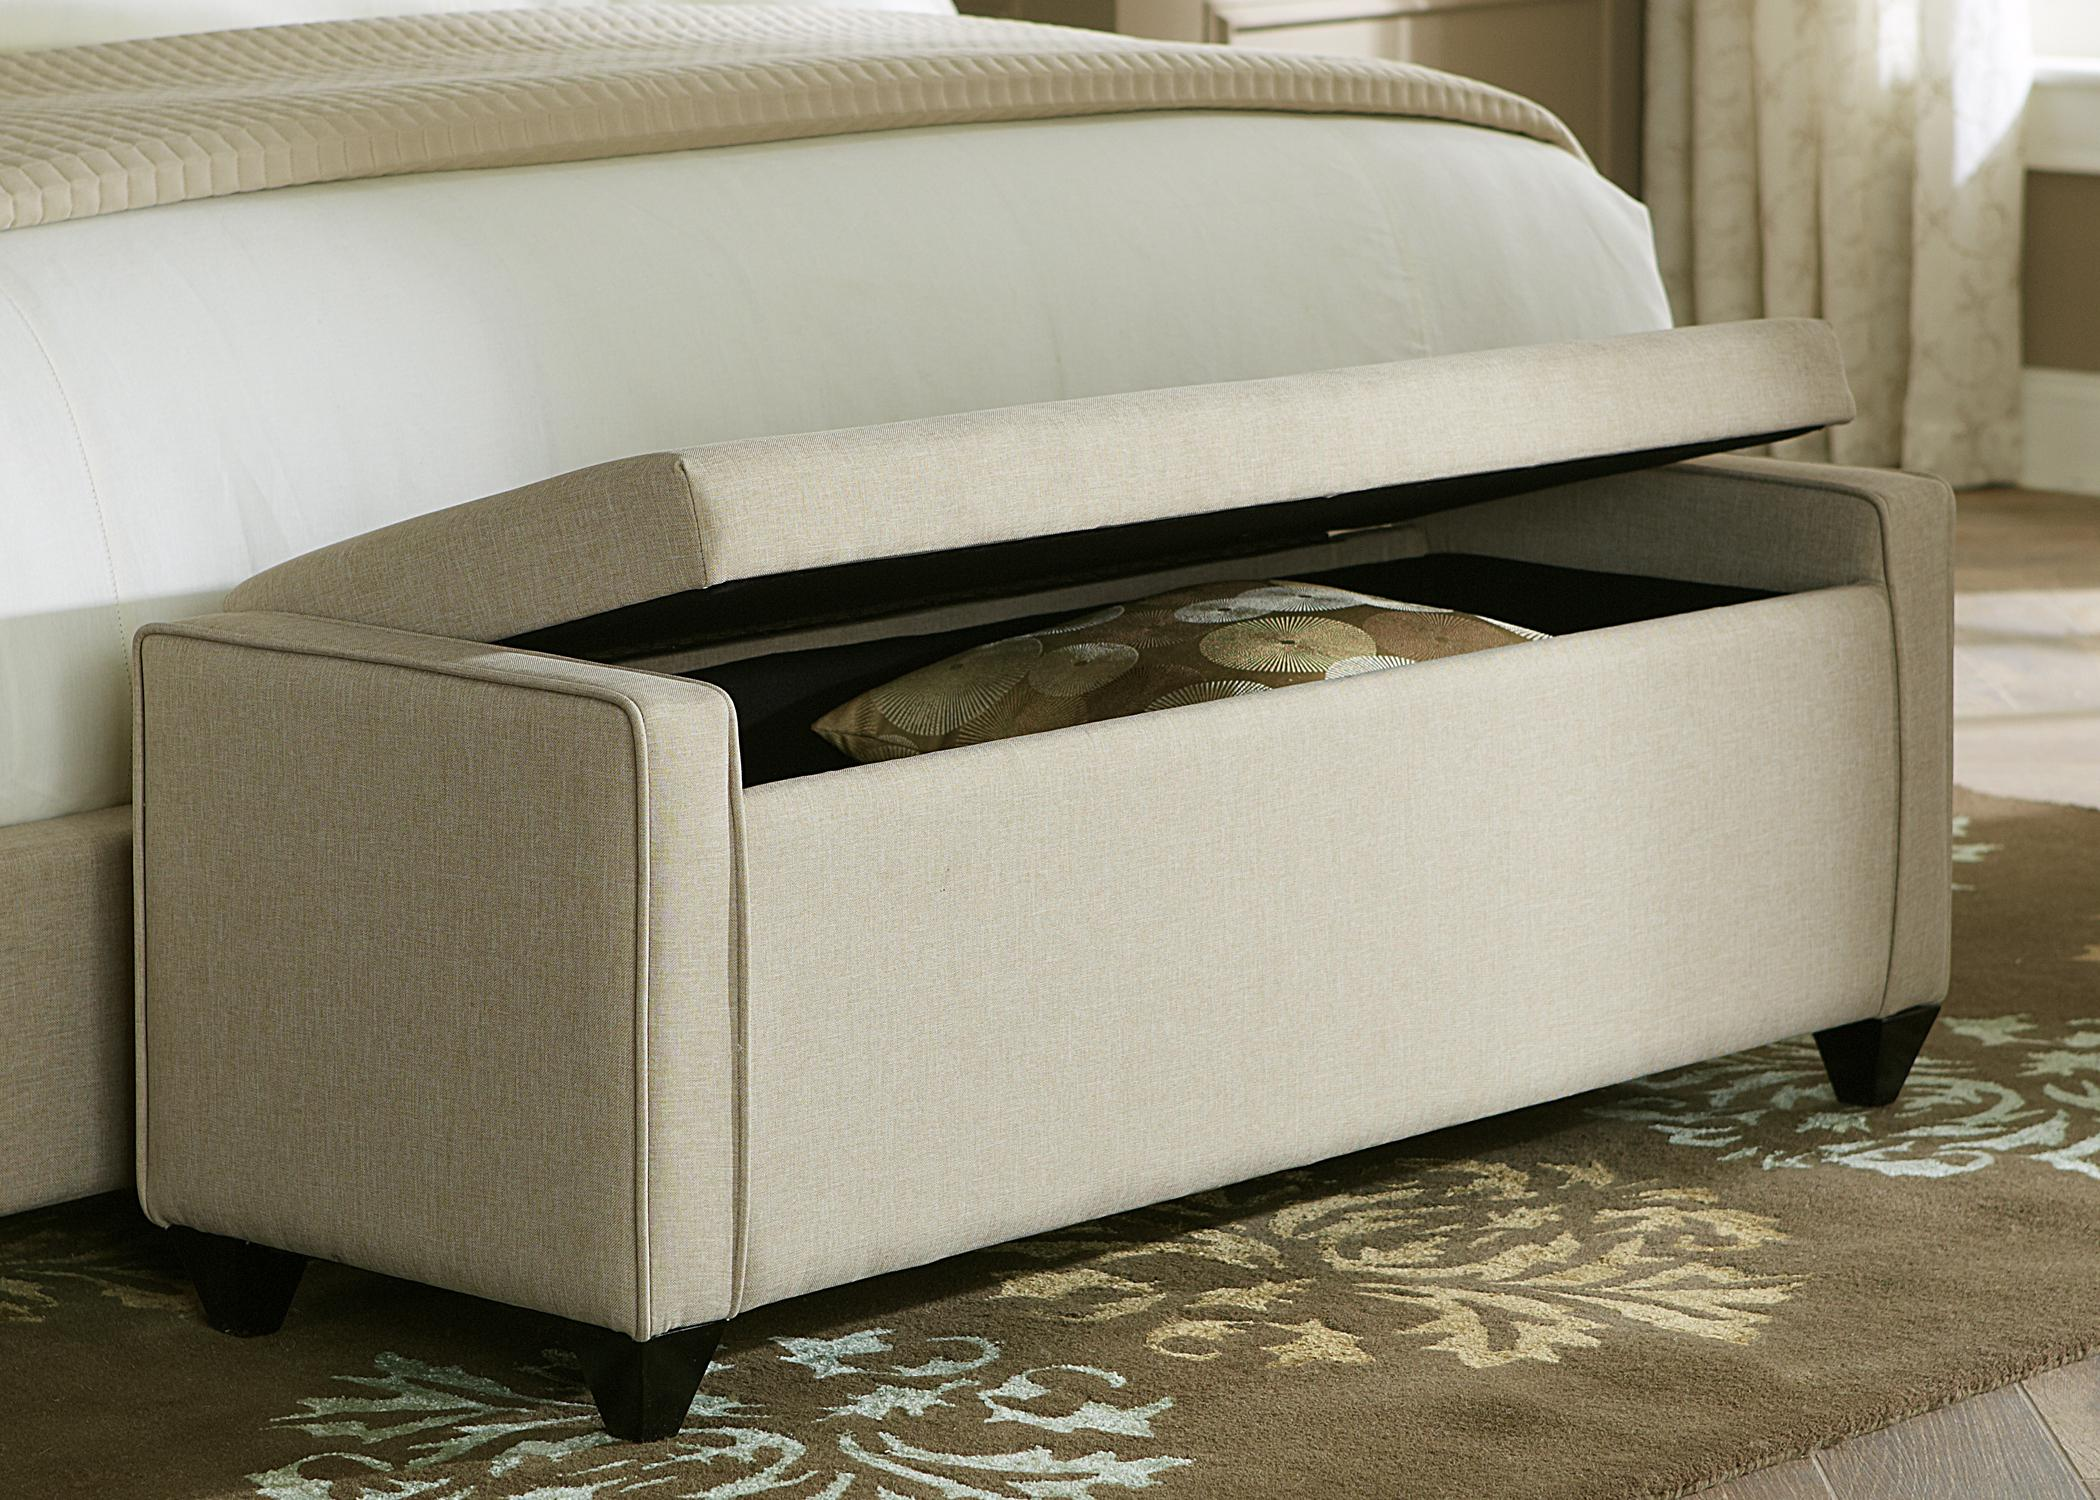 Upholstered Beds Lift Top Bed Bench Rotmans